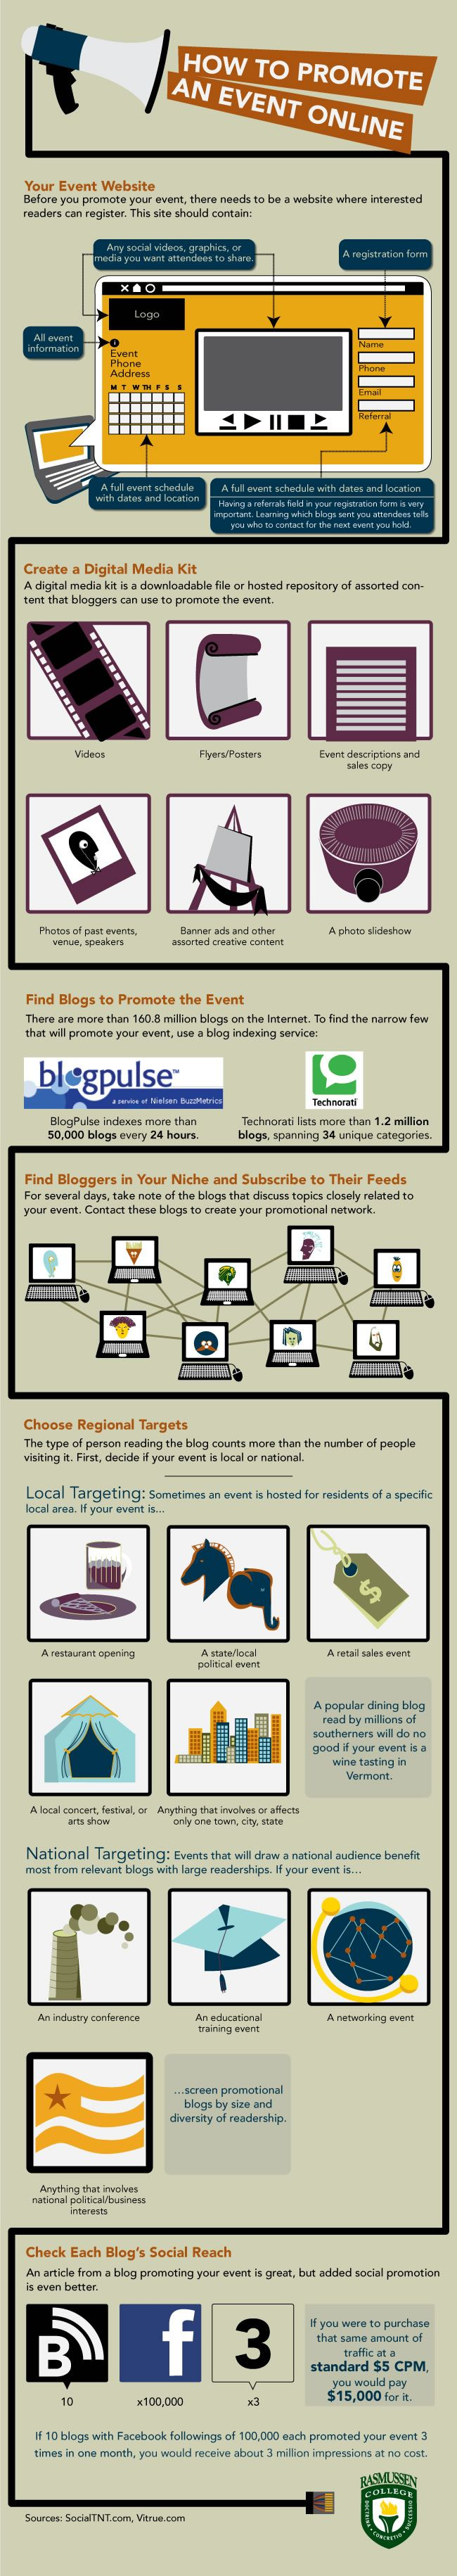 With dozens of avenues for online promotion as a Marketing and Sales professional, how do you choose the best channels for promoting an event online? This infographic will guide you to optimal social media event promotion for a successful event. Brought to you by the Rasmussen College - School of Business.